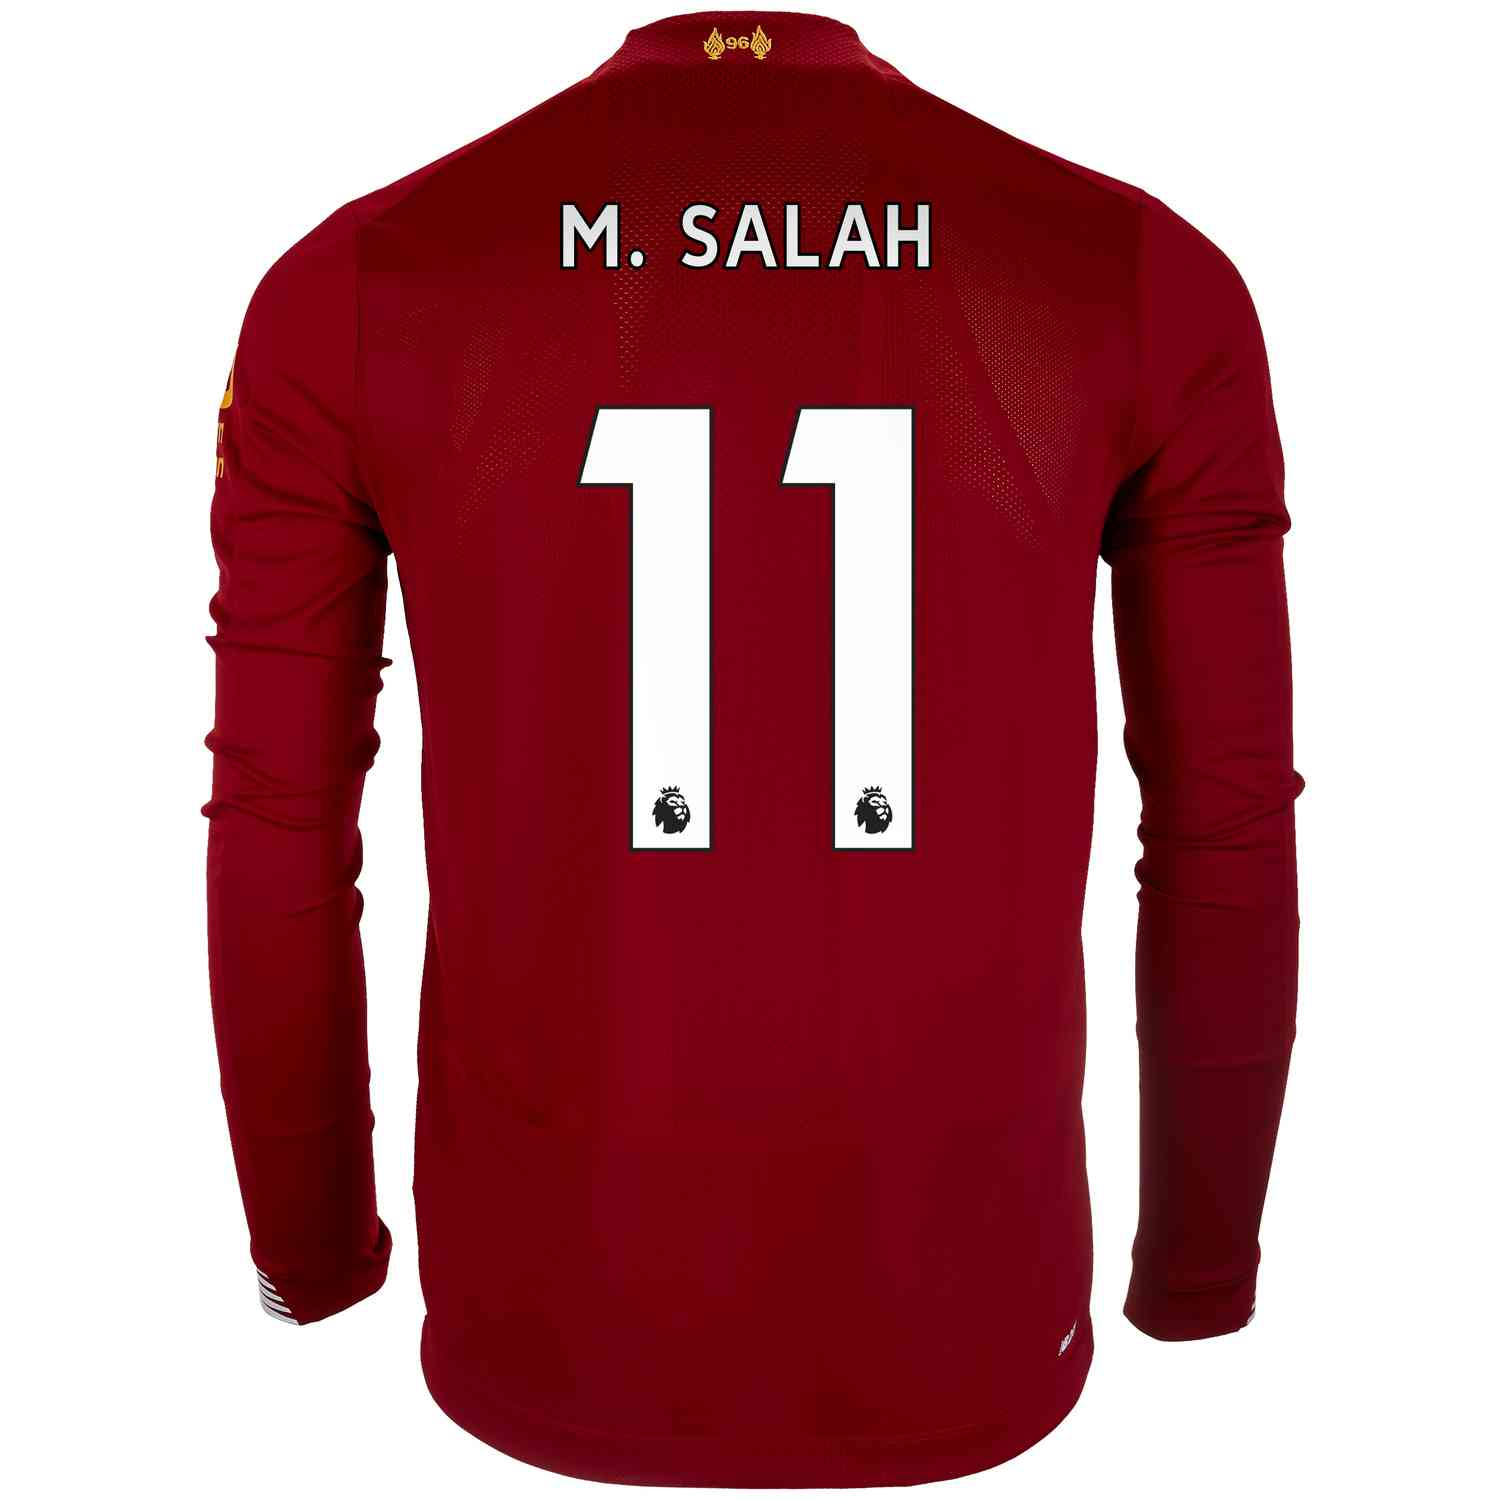 official photos 6cfc5 3cb0a 2019/20 Mohamed Salah Liverpool Home L/S Jersey